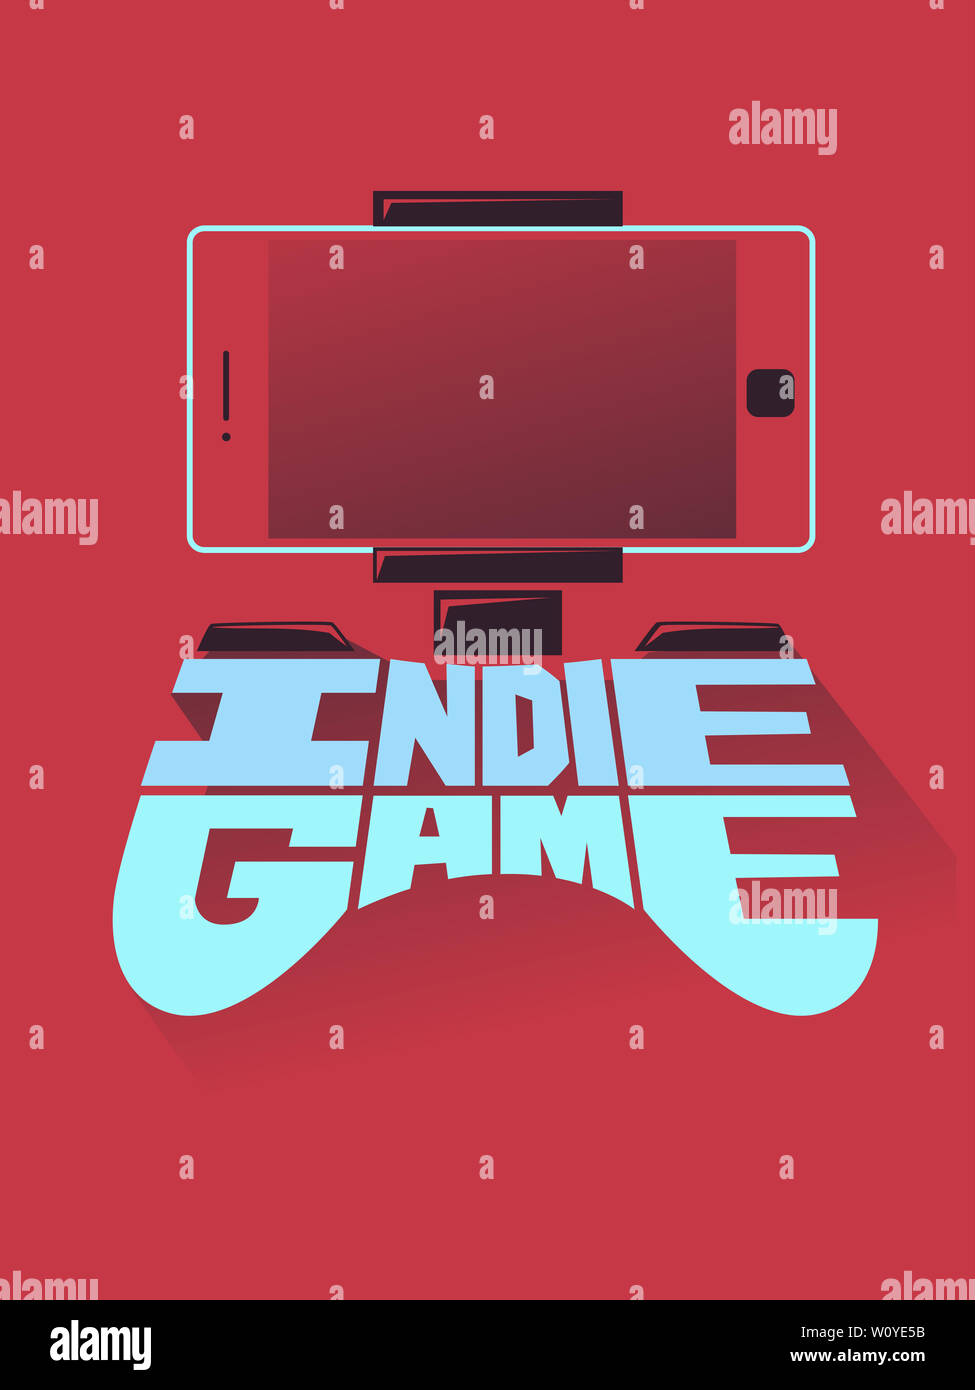 Illustration of Indie Game Lettering Shaped as Video Game Console